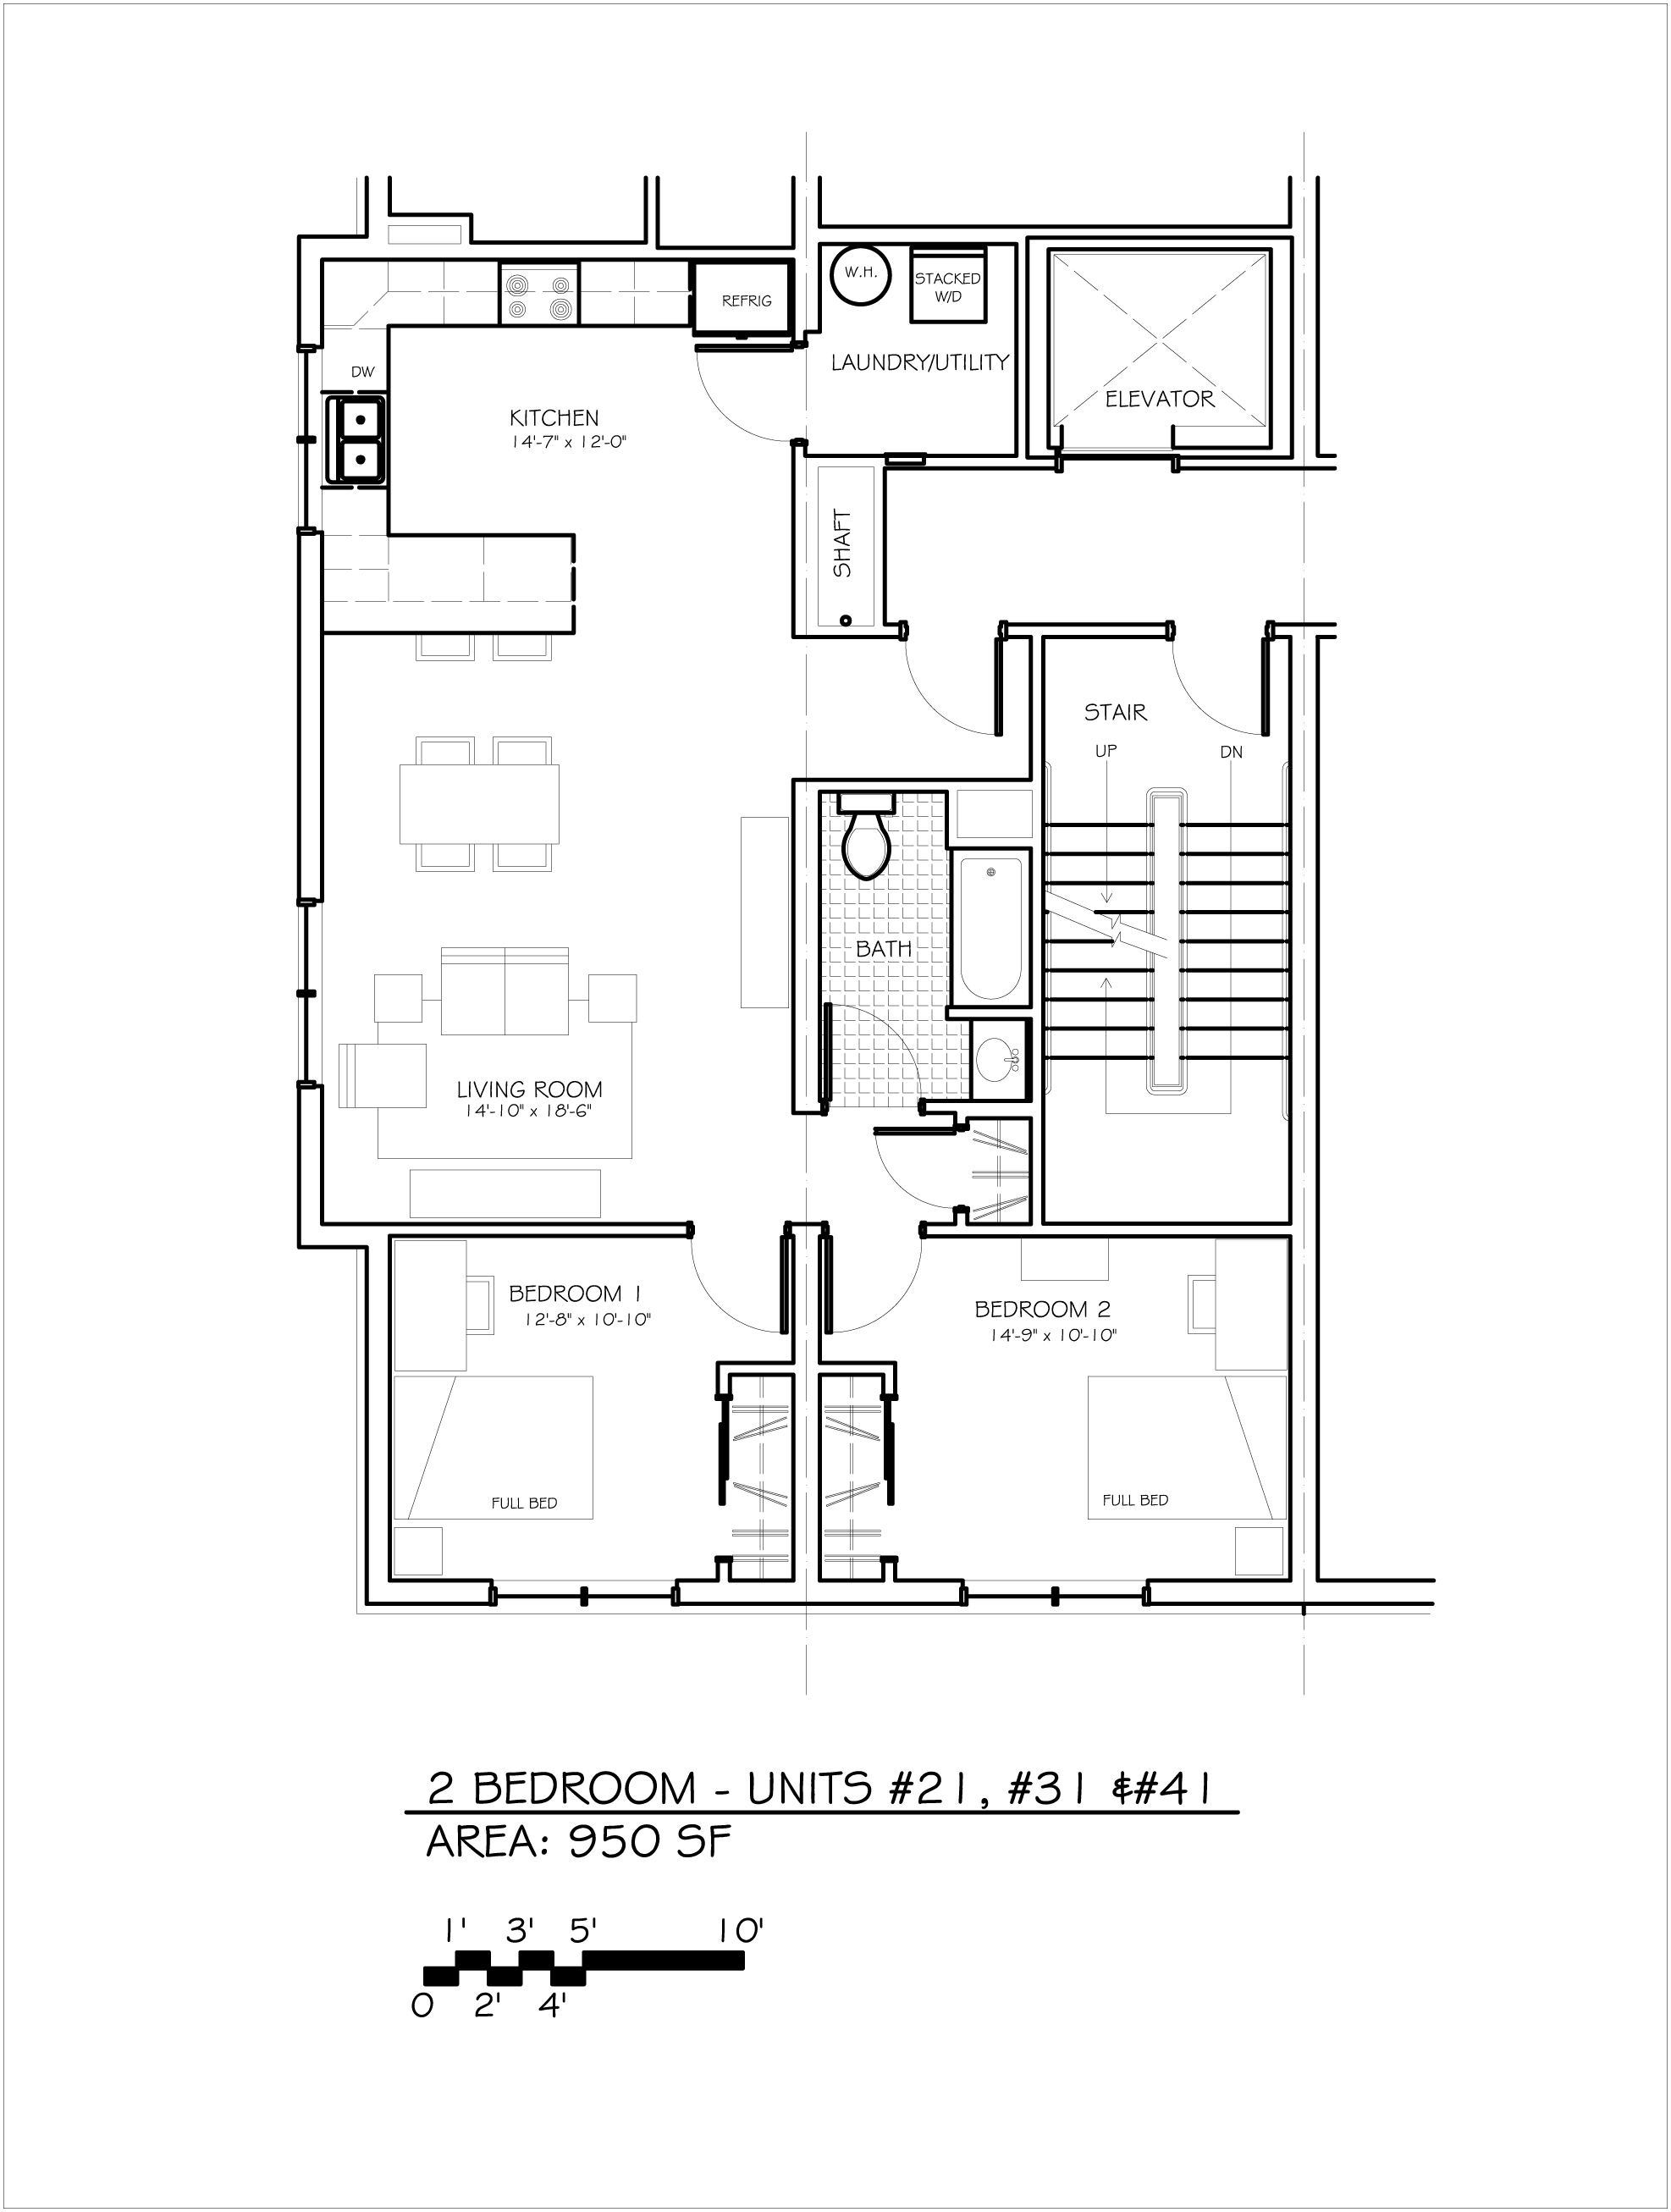 2 bedroom 1 bath apartments. one 2 bedroom  1 bath apartment of 950 square feet clickable link to floor plan Apt 21 Coal Yard Apartments Building 3 Beer Properties Ithaca NYBeer